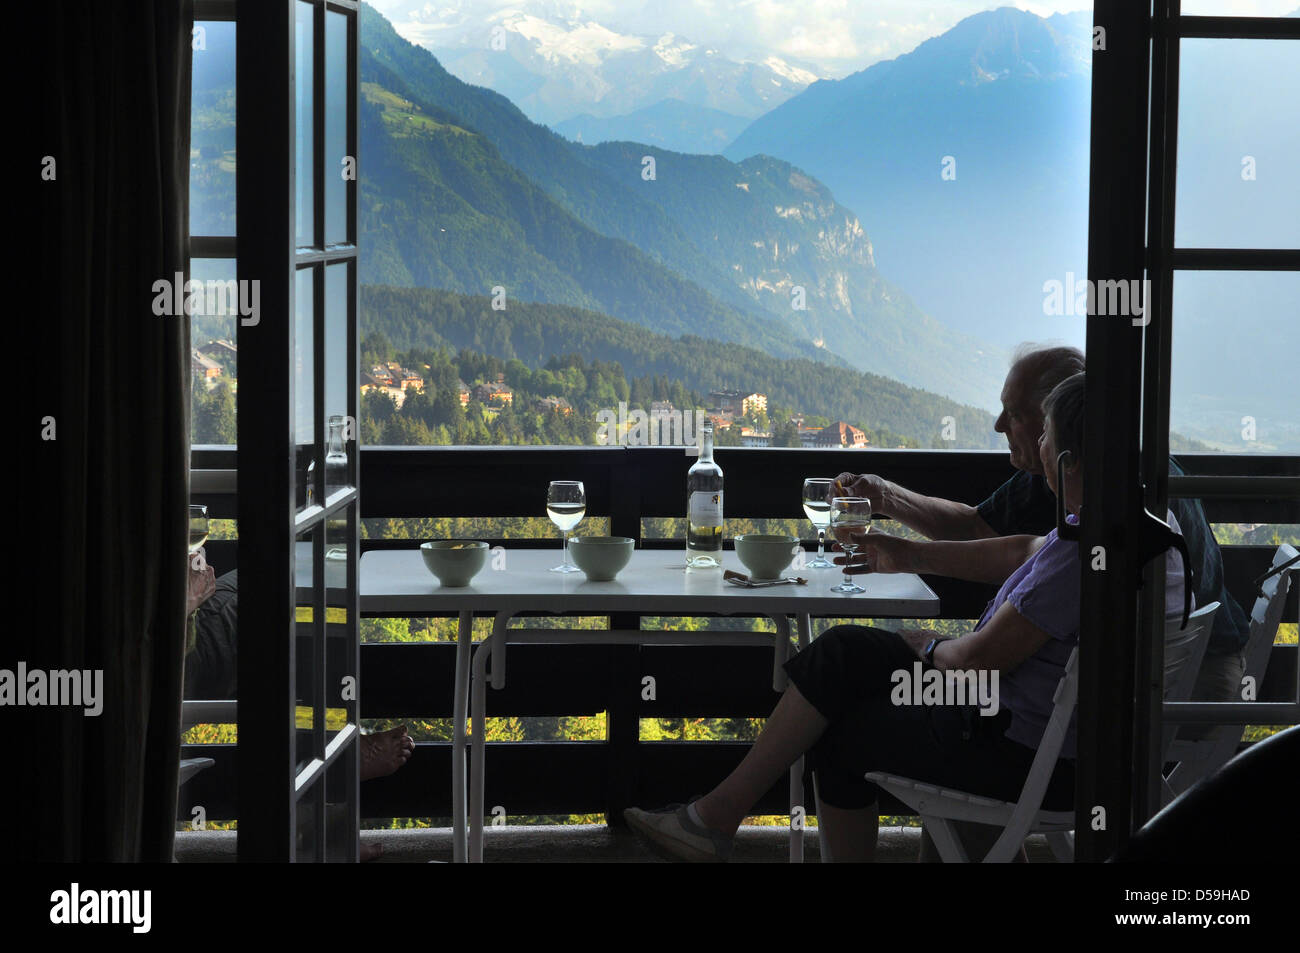 A retired couple enjoy a glass of wine on their Swiss Chalet balcony, Switzerland. - Stock Image